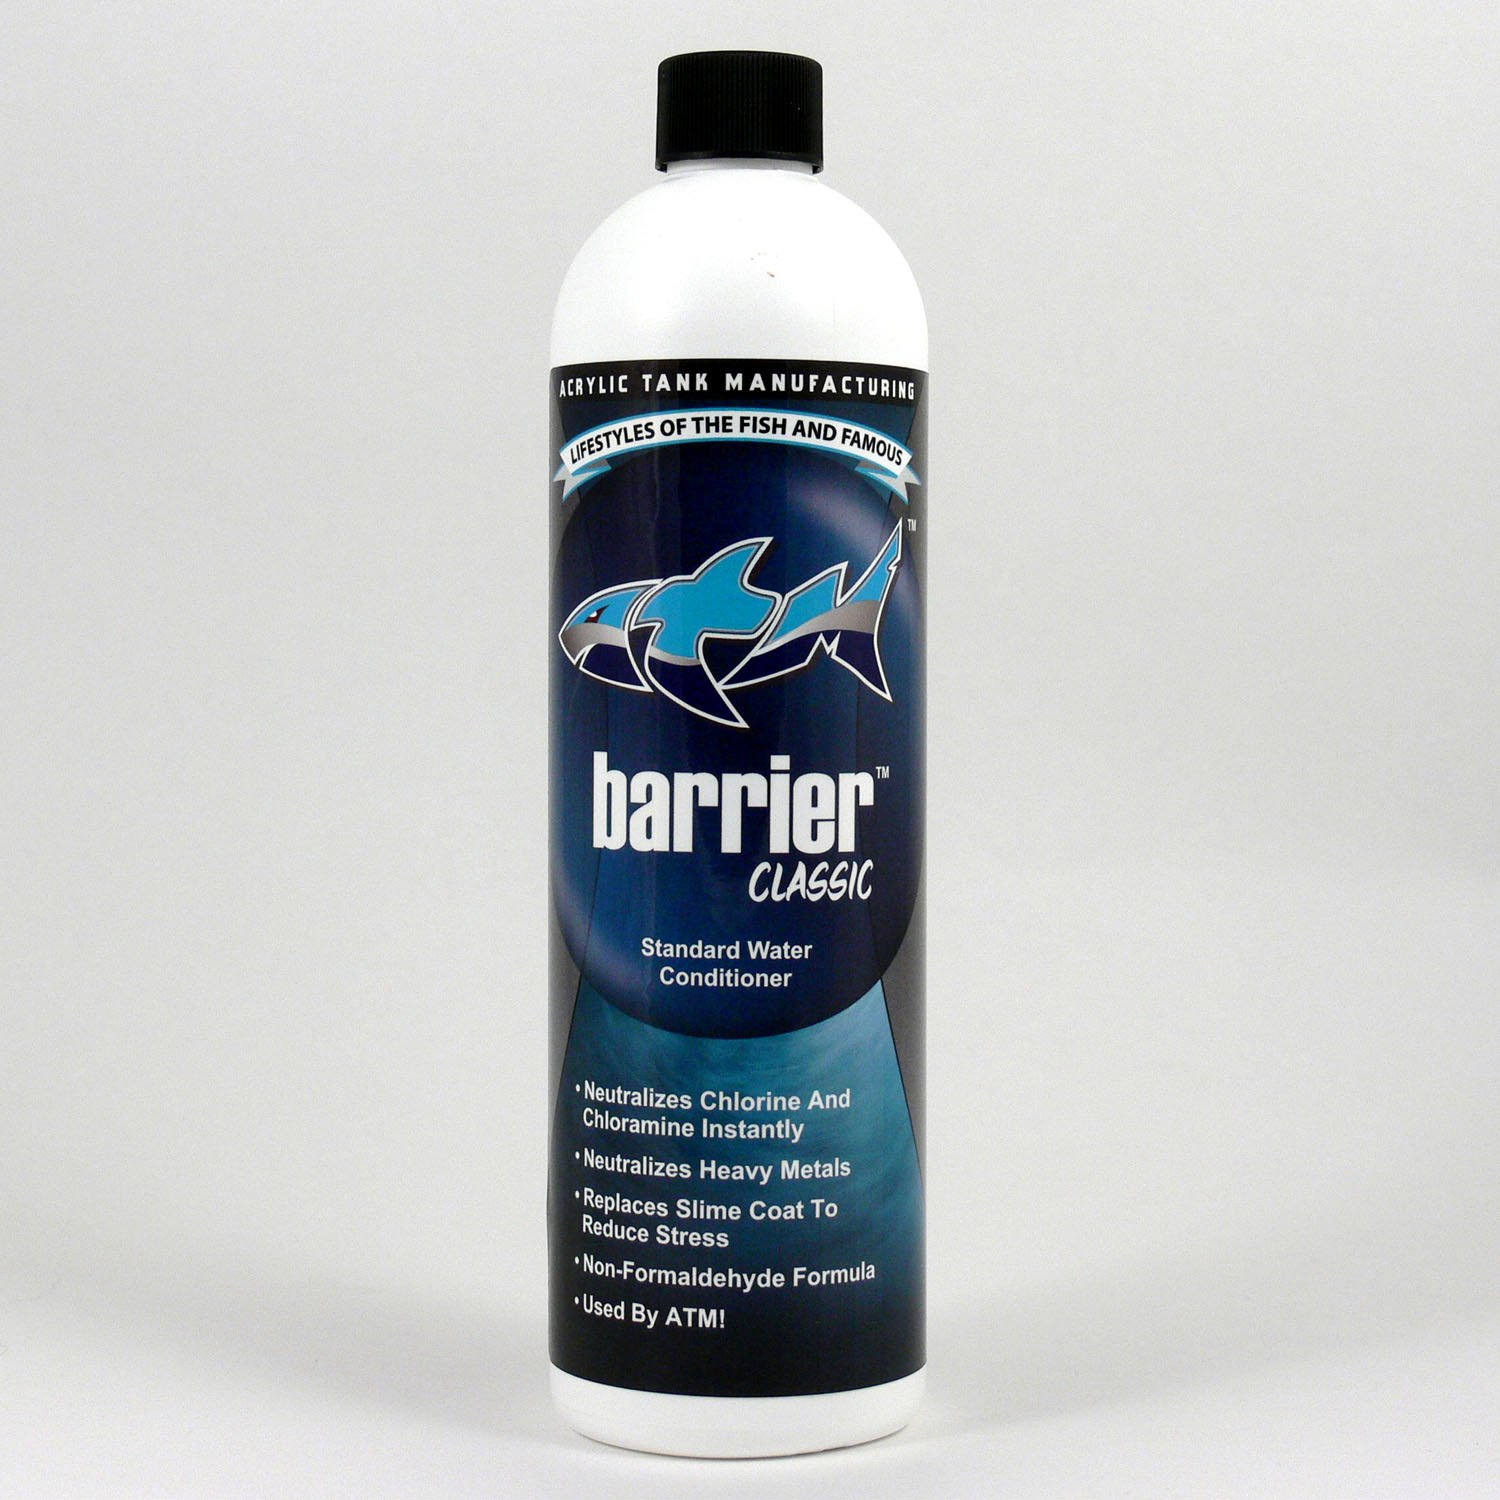 ATM Barrier Standard Water Conditioner for Aquariums